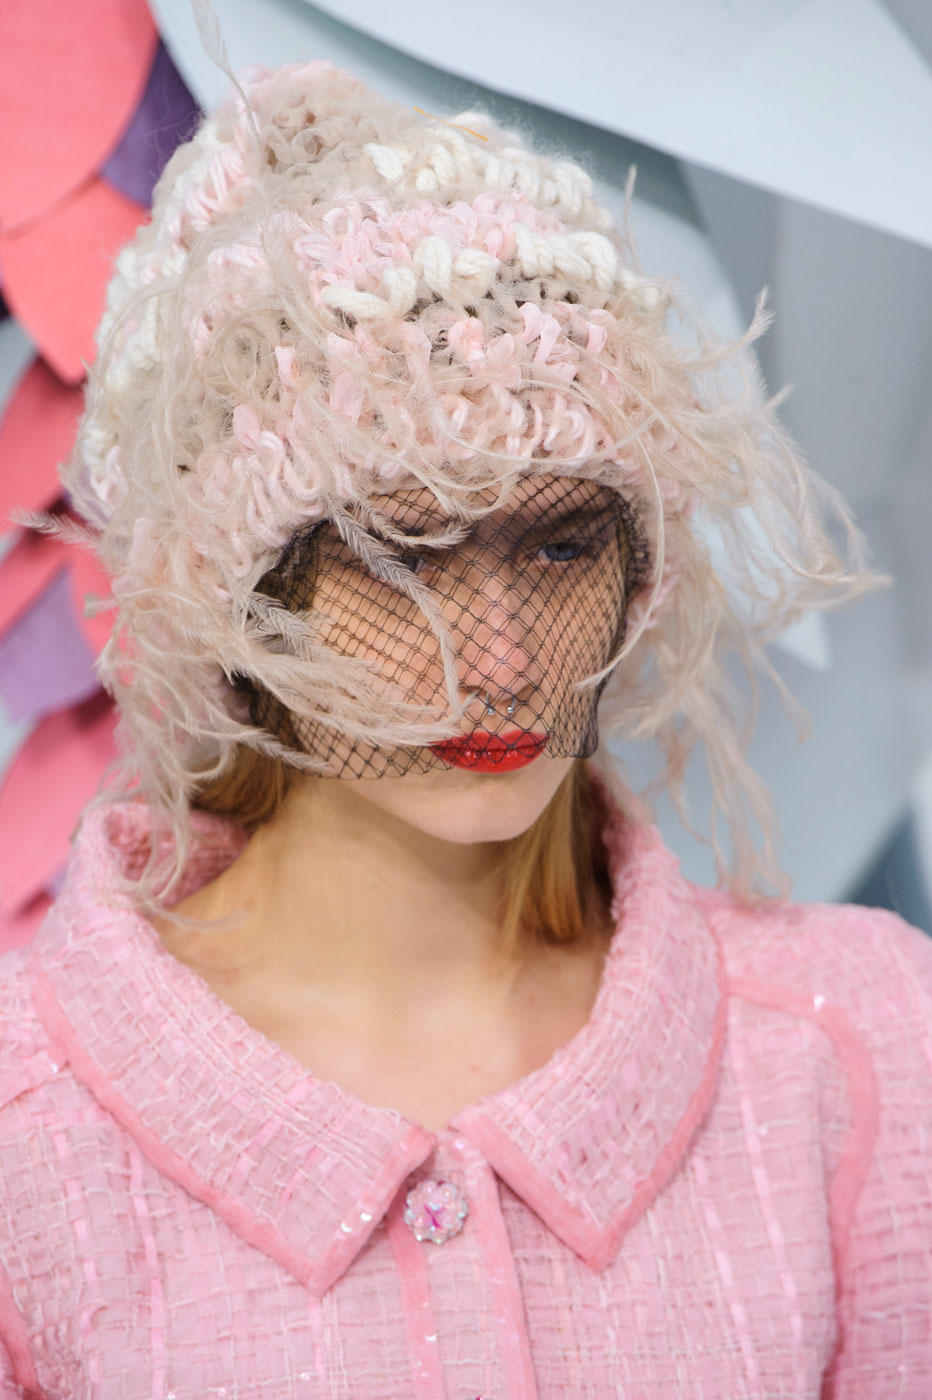 Chanel-fashion-runway-show-close-ups-haute-couture-paris-spring-summer-2015-the-impression-061